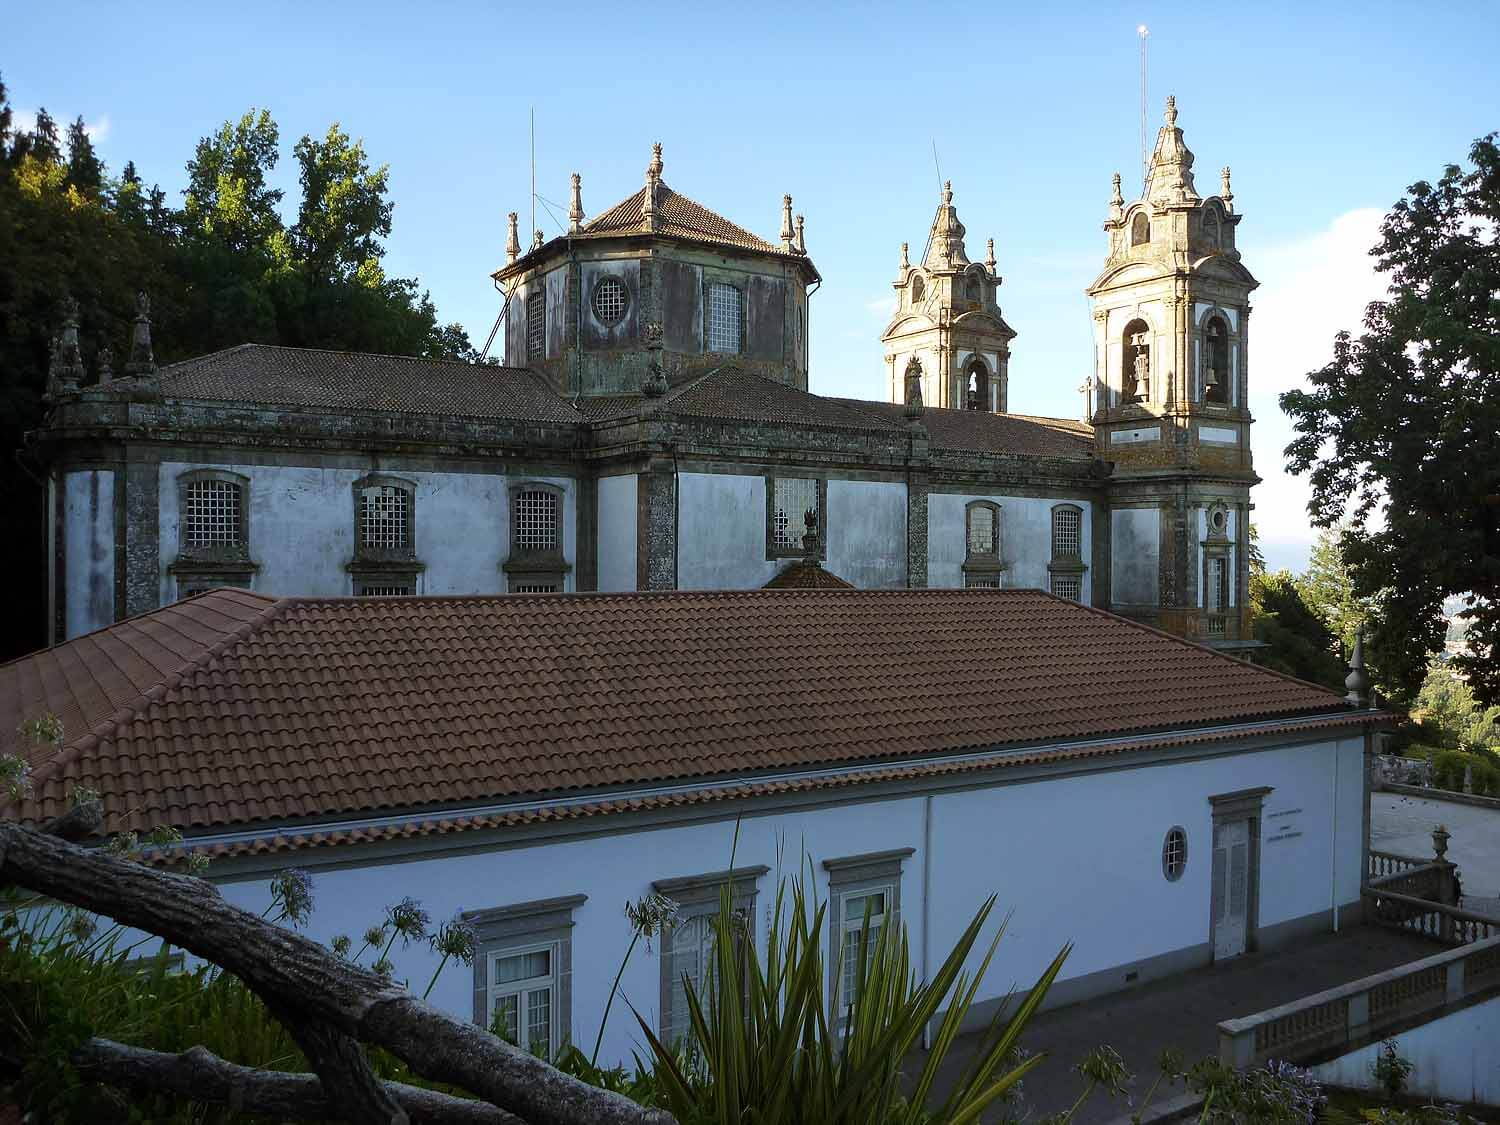 portugal-braga-sanctuary-bom-jesus-do-monte-stairs-pilgramage-chaple.JPG